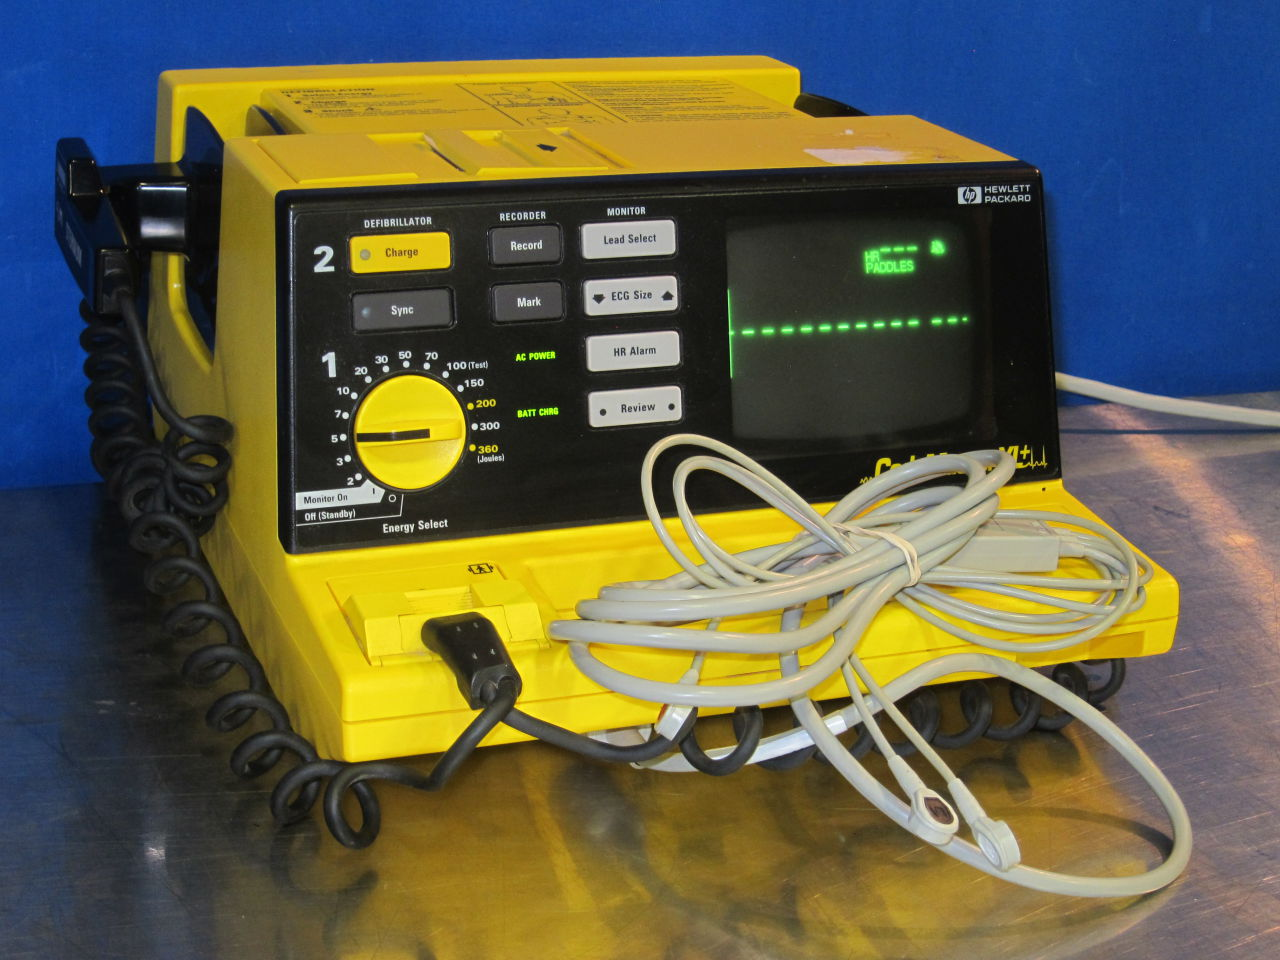 HEWLETT PACKARD 43130M Defibrillator For Sale. This Auction Is Closed